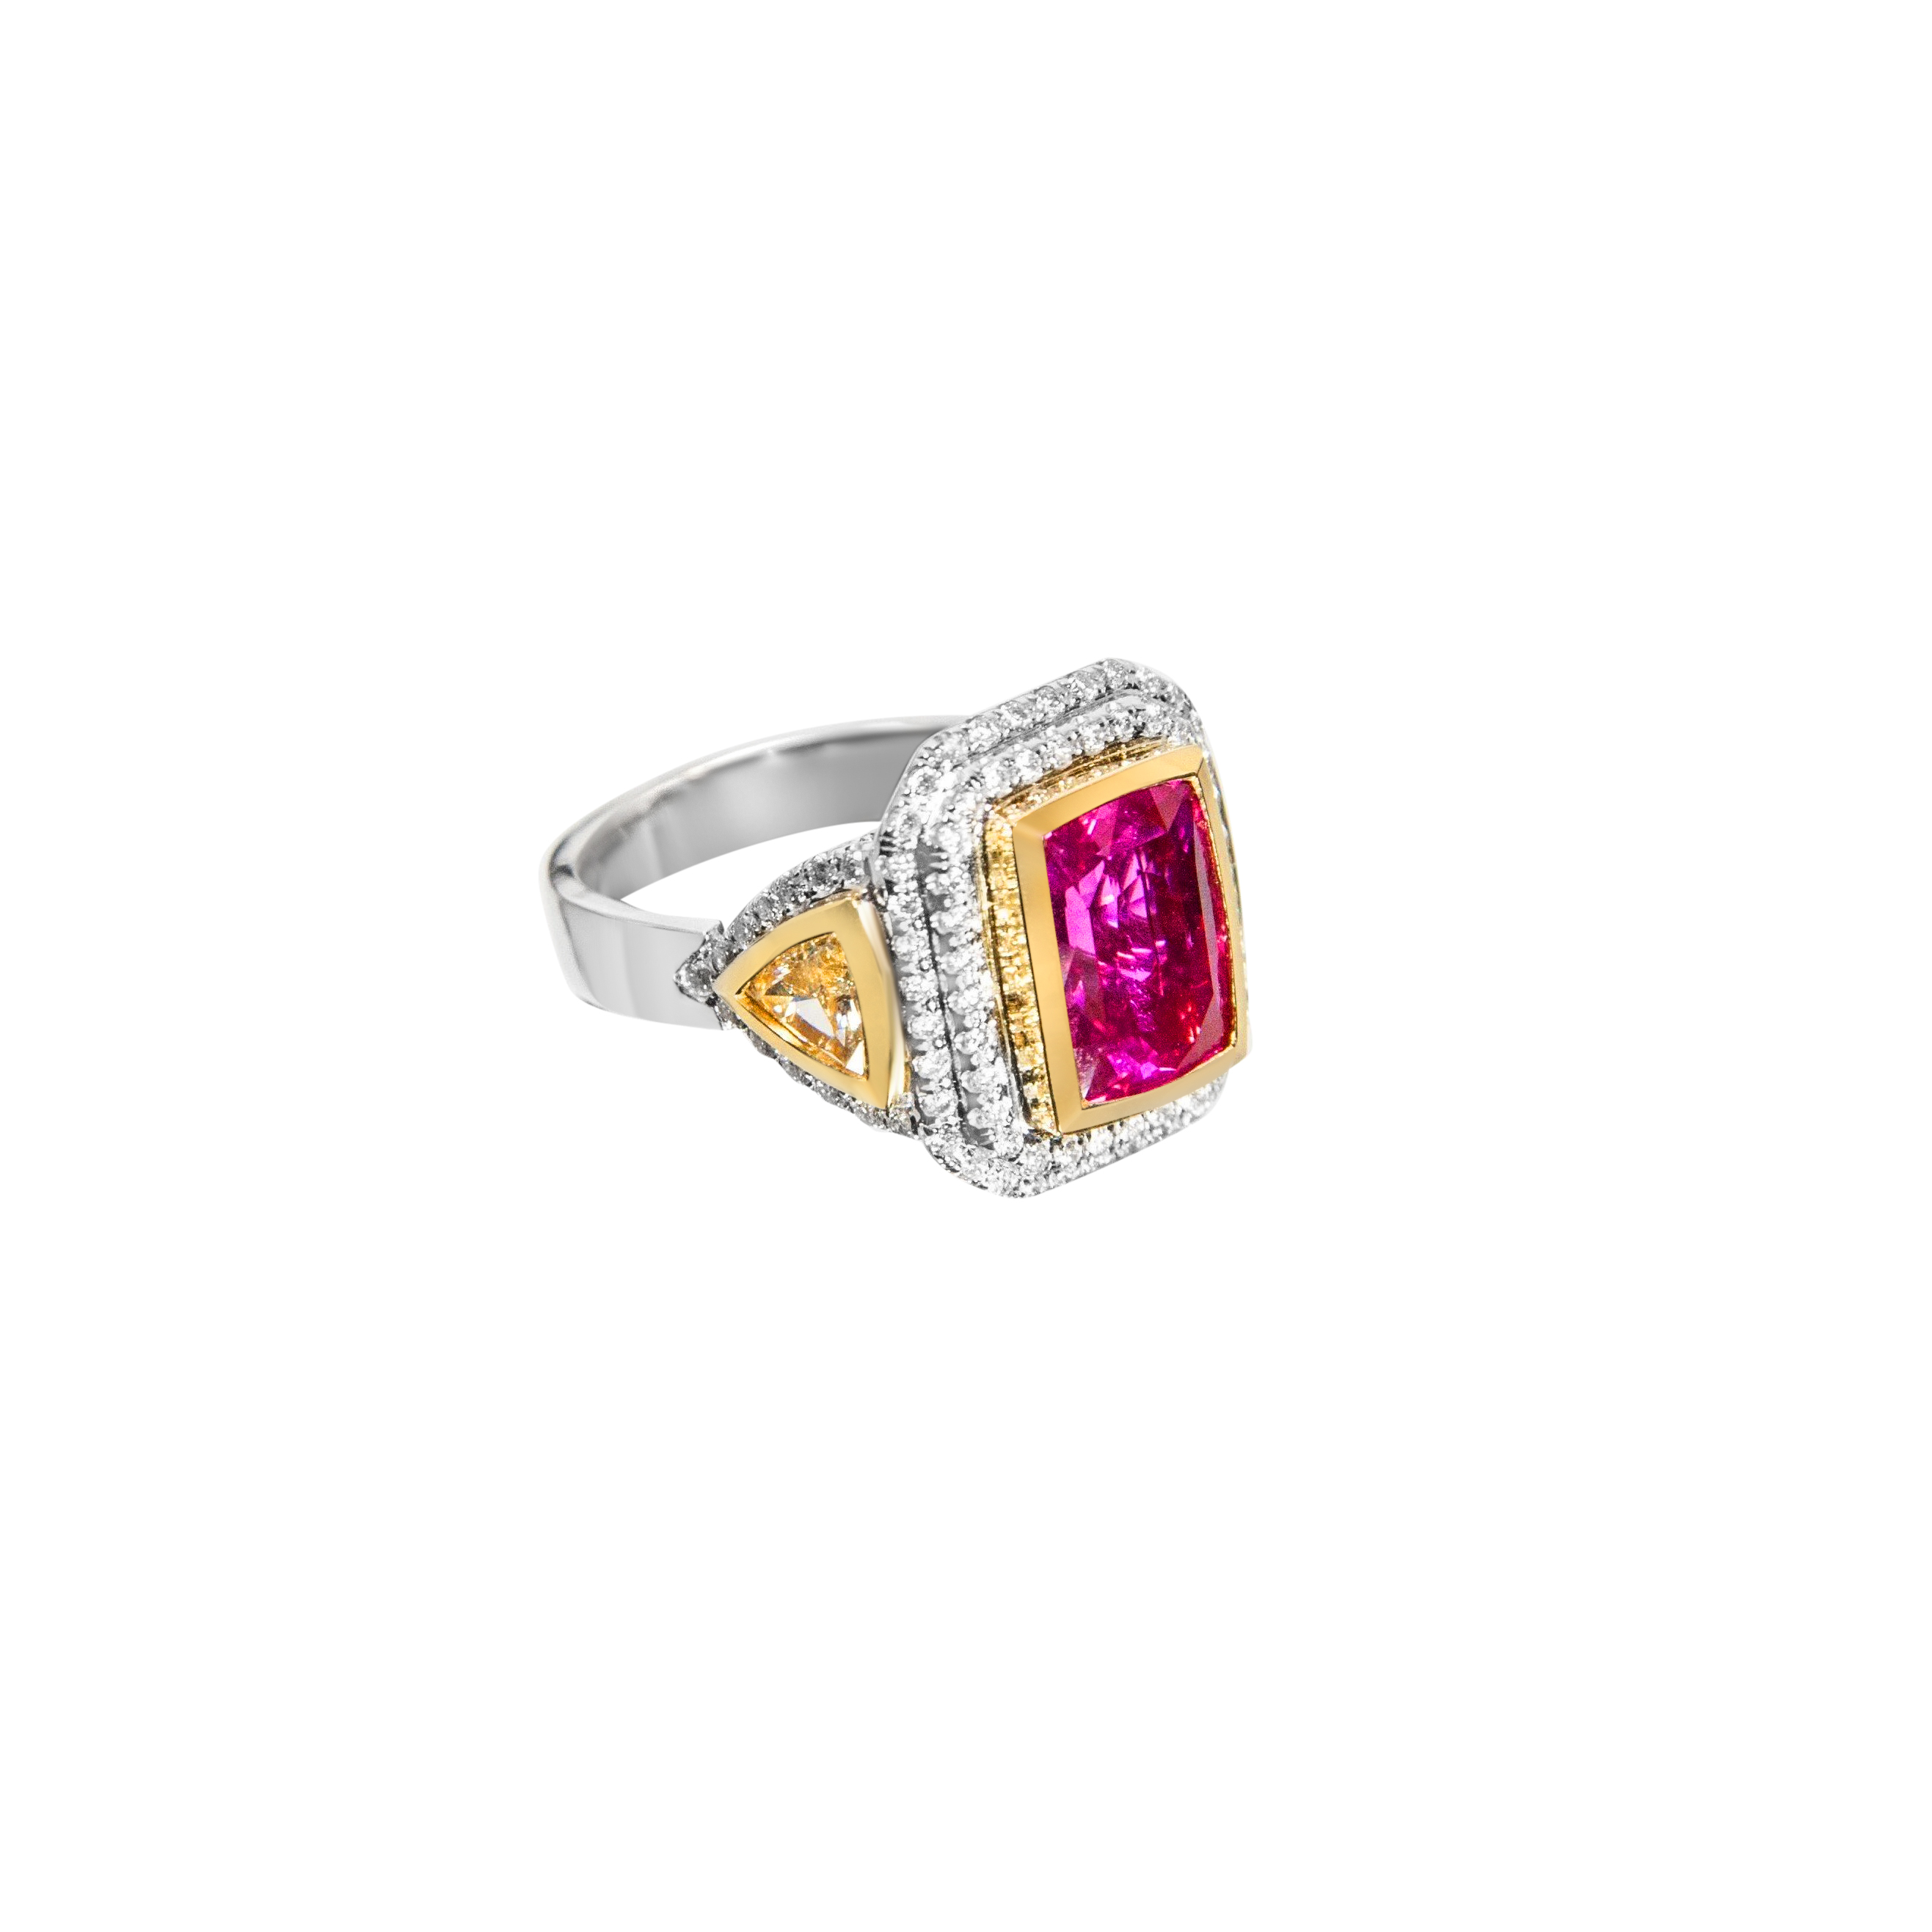 ring eternity antique diamond engagement of rings natural ruby front white gold old diamonds view cut